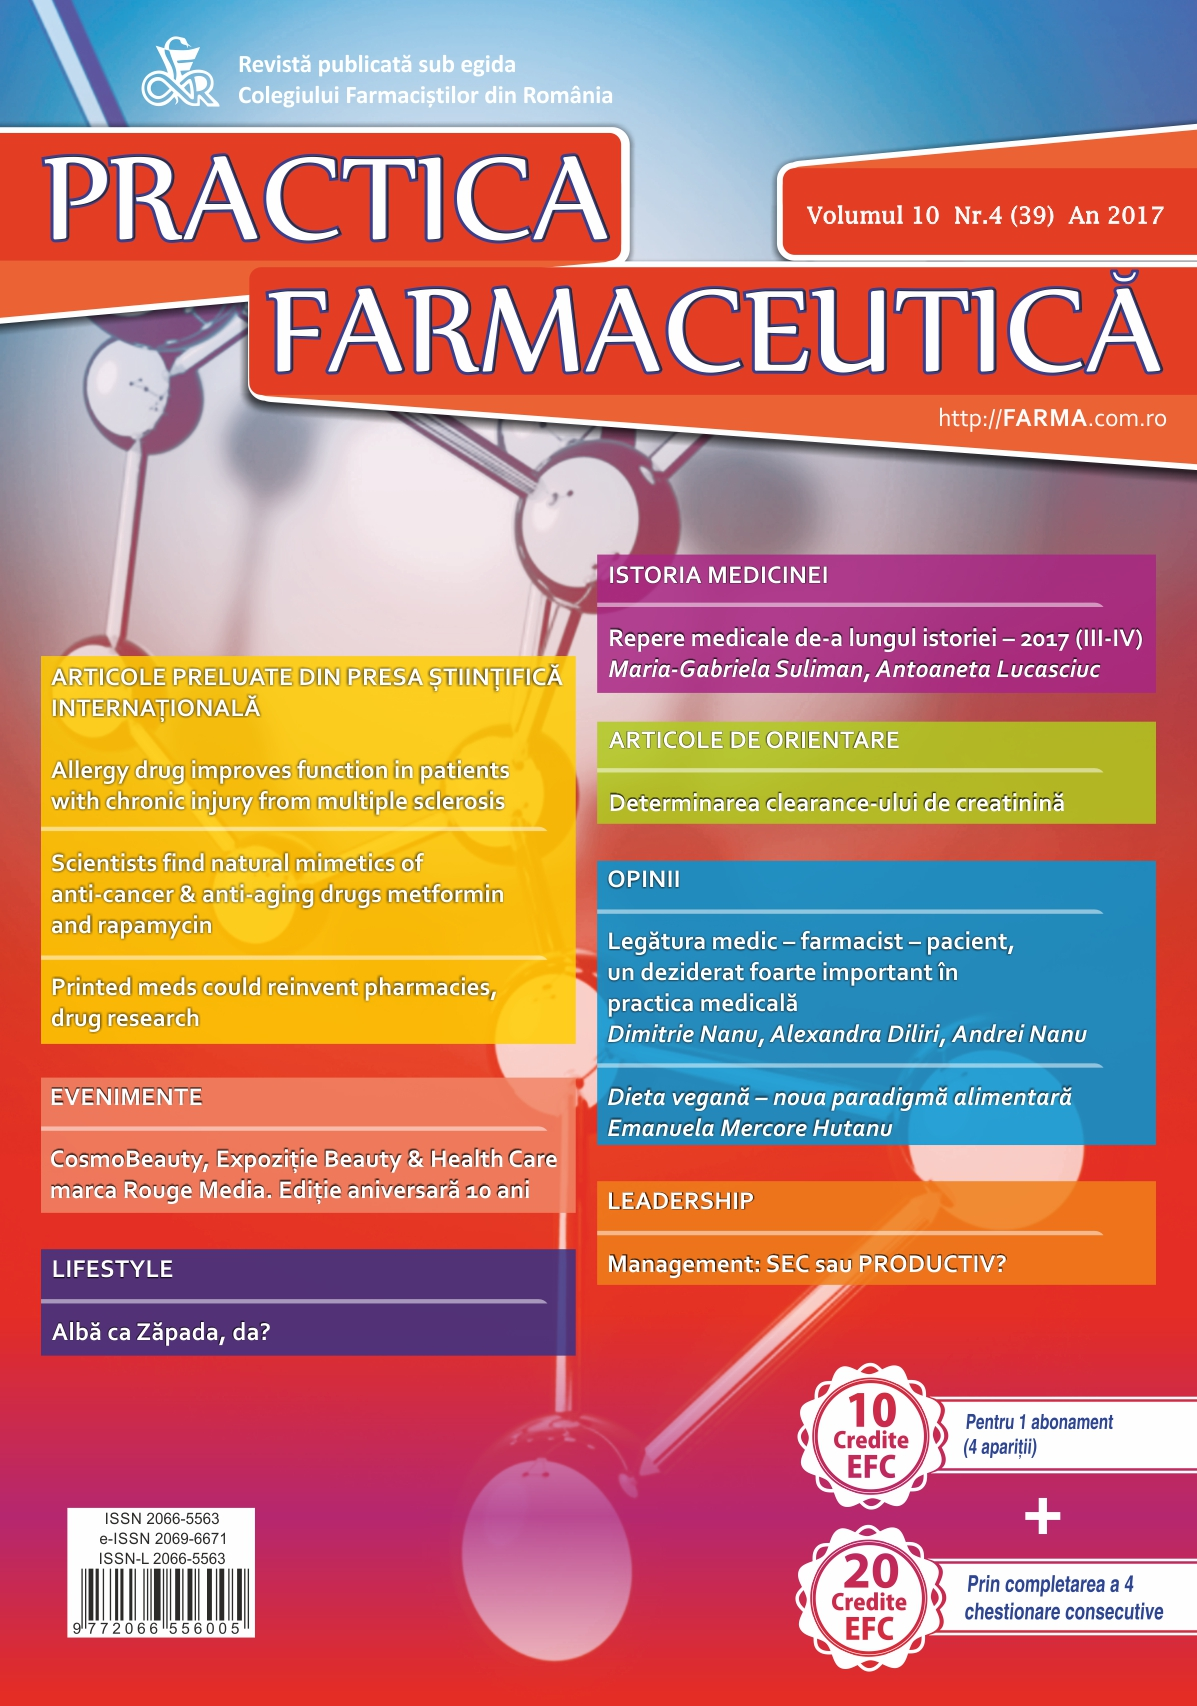 Revista Practica Farmaceutica, Vol. 10, Nr. 4 (39), 2017